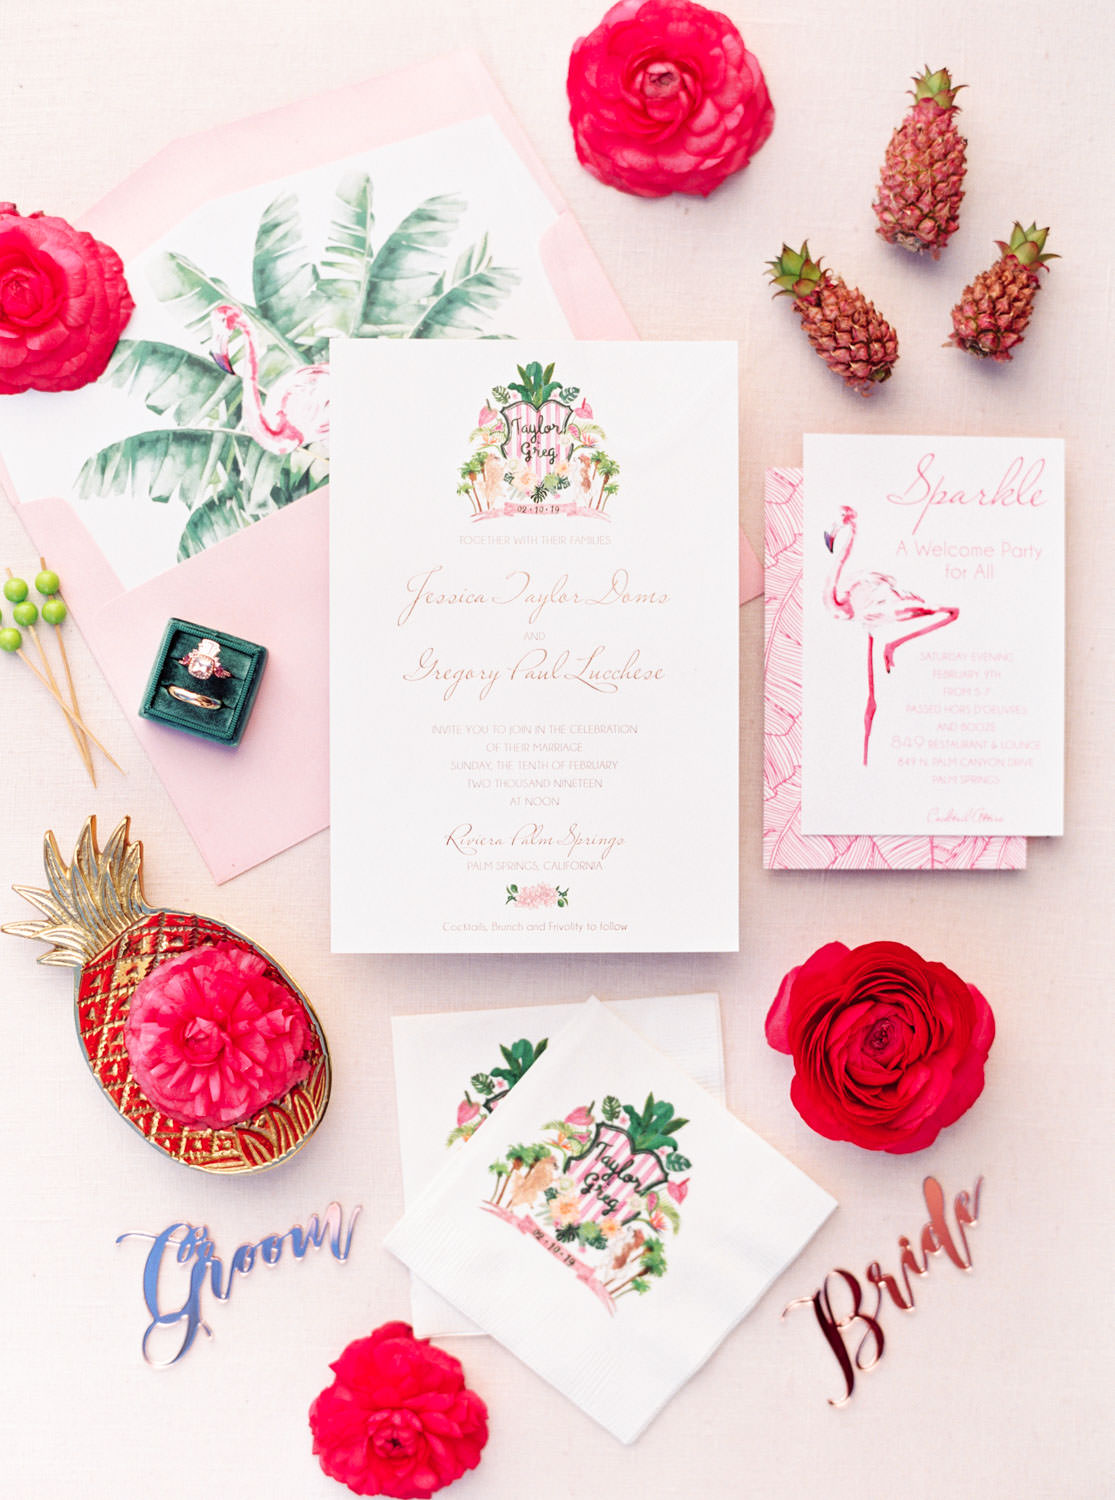 Custom Palm Springs wedding crest on ivory invitation with rose gold text. Pink envelope with palm leaf and flamingo liner. Information card with pink flamingo watercolor, custom wedding crest napkins, mini pineapples and fuchsia flowers styled with laser cut bride and groom place setting cards. Cavin Elizabeth Photography